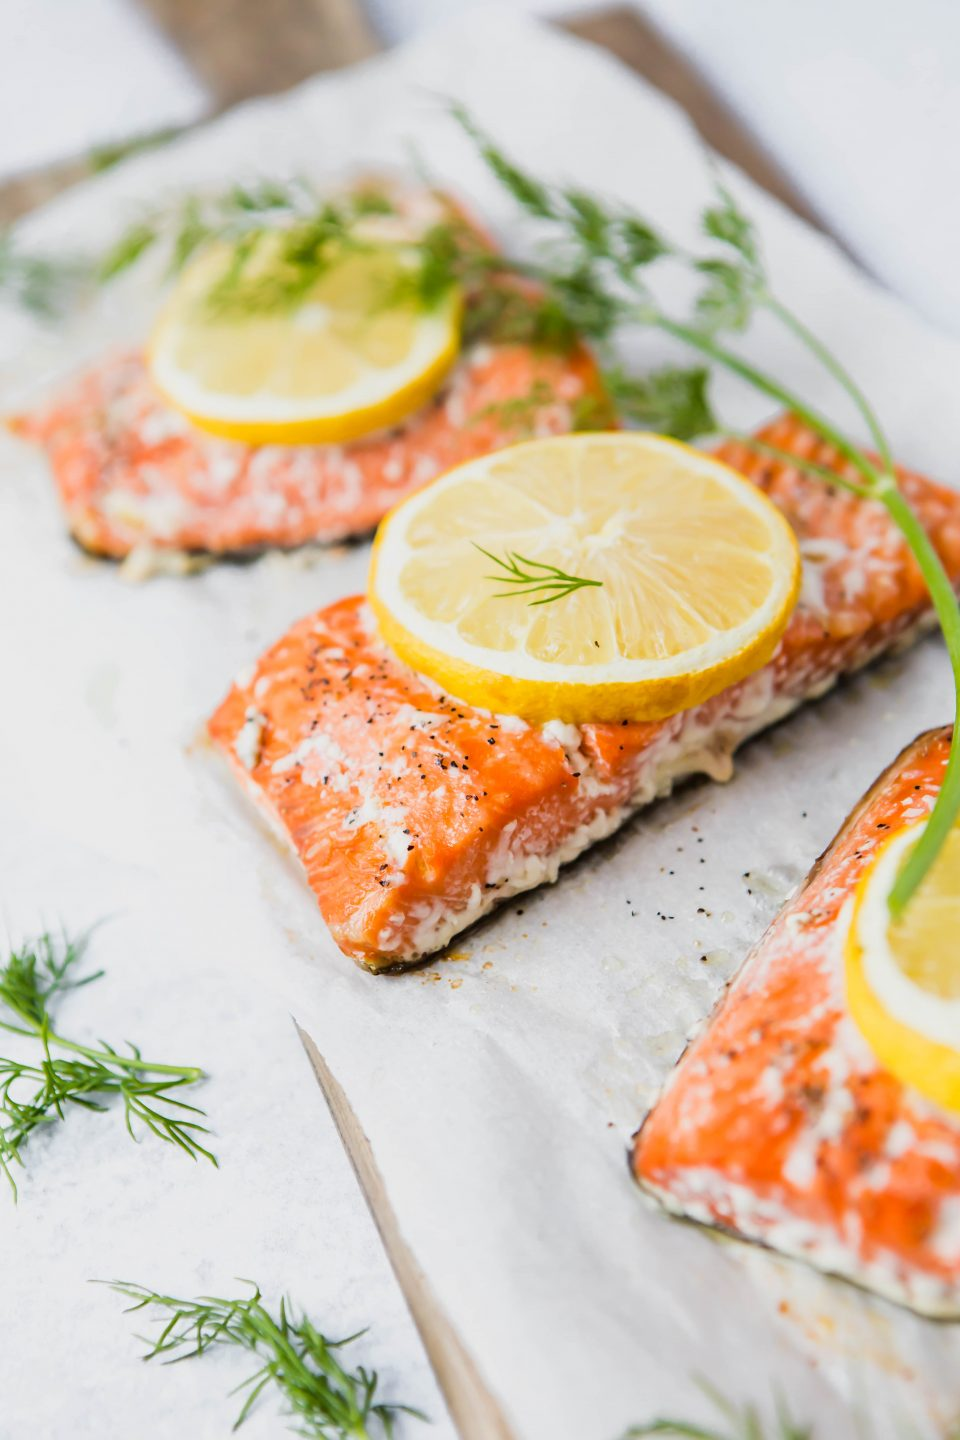 A 45 degree angle shot of three pieces of cooked salmon on parchment paper. Topped with lemon slices and garnished with dill.